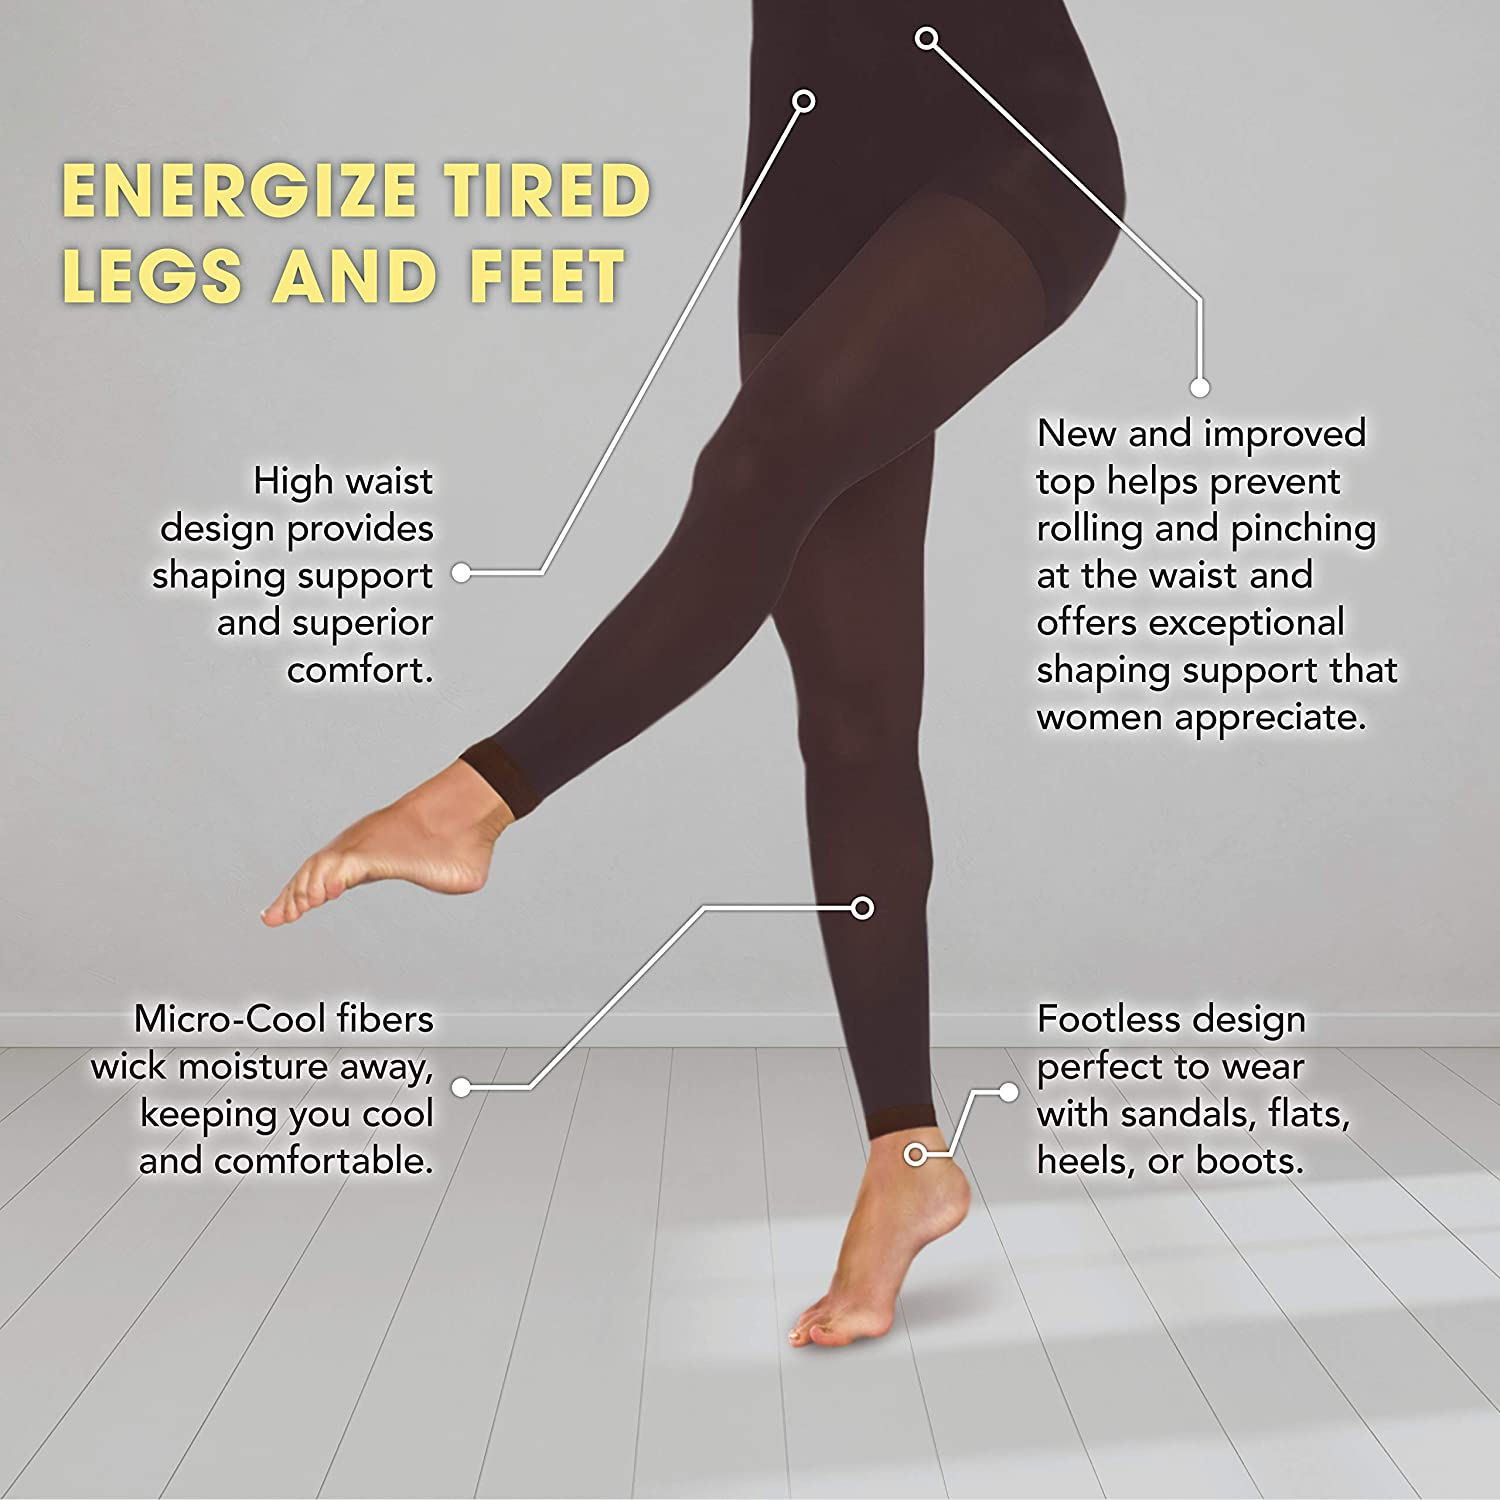 a33546404 TherafirmLIGHT Women s Footless Support Tights - 10-15mmHg Compression  Stockings (Black